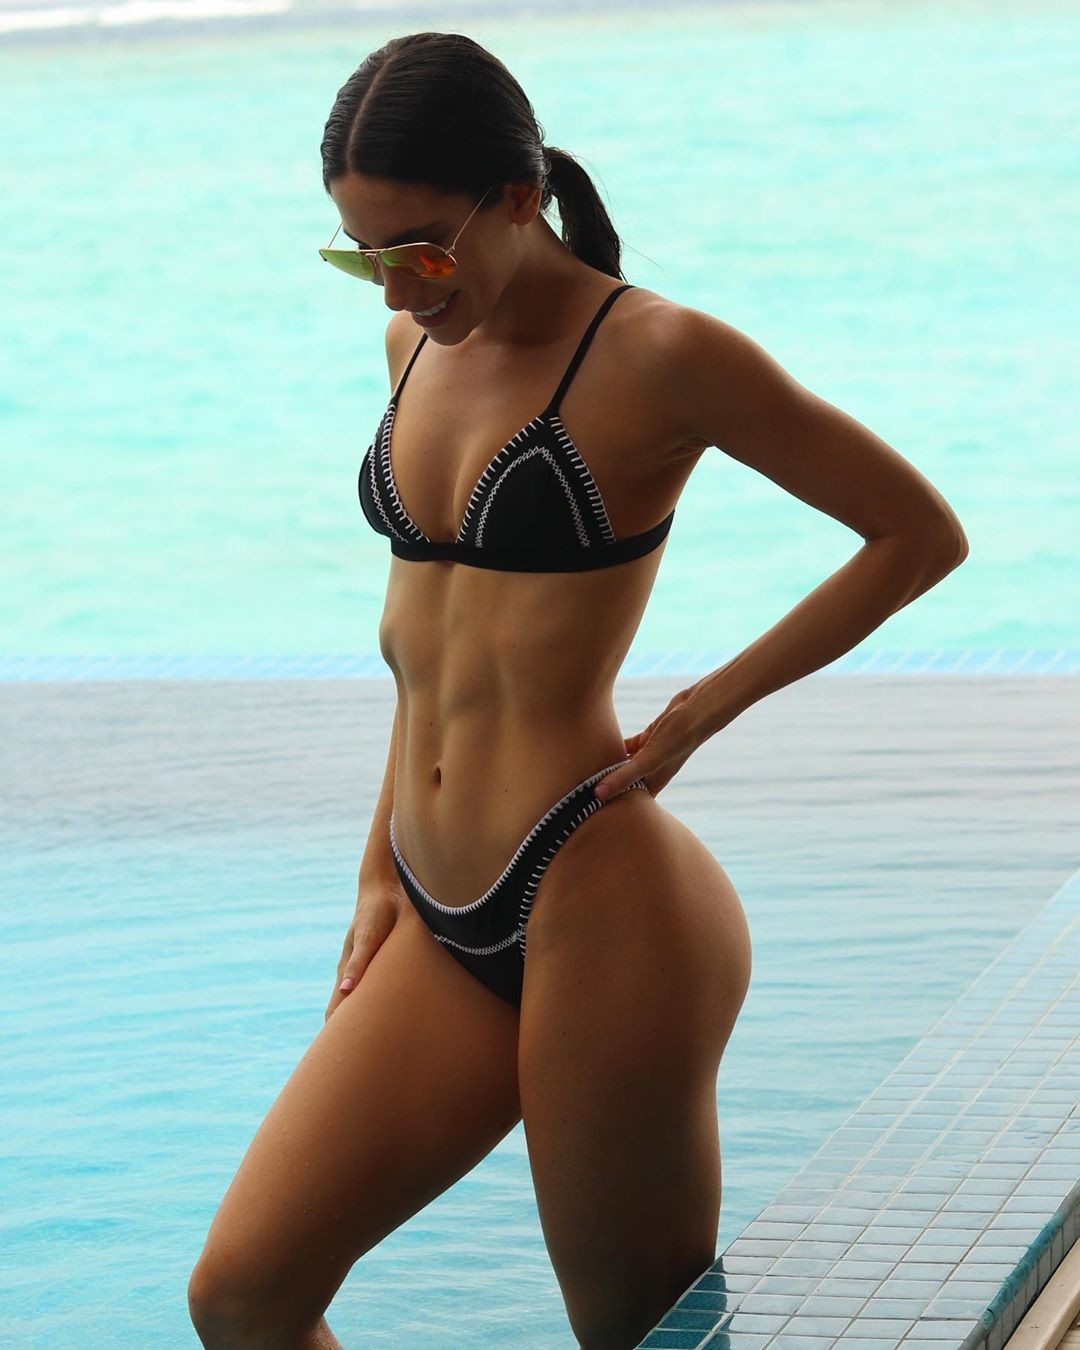 Some of the best views Jen Selter, Physical fitness